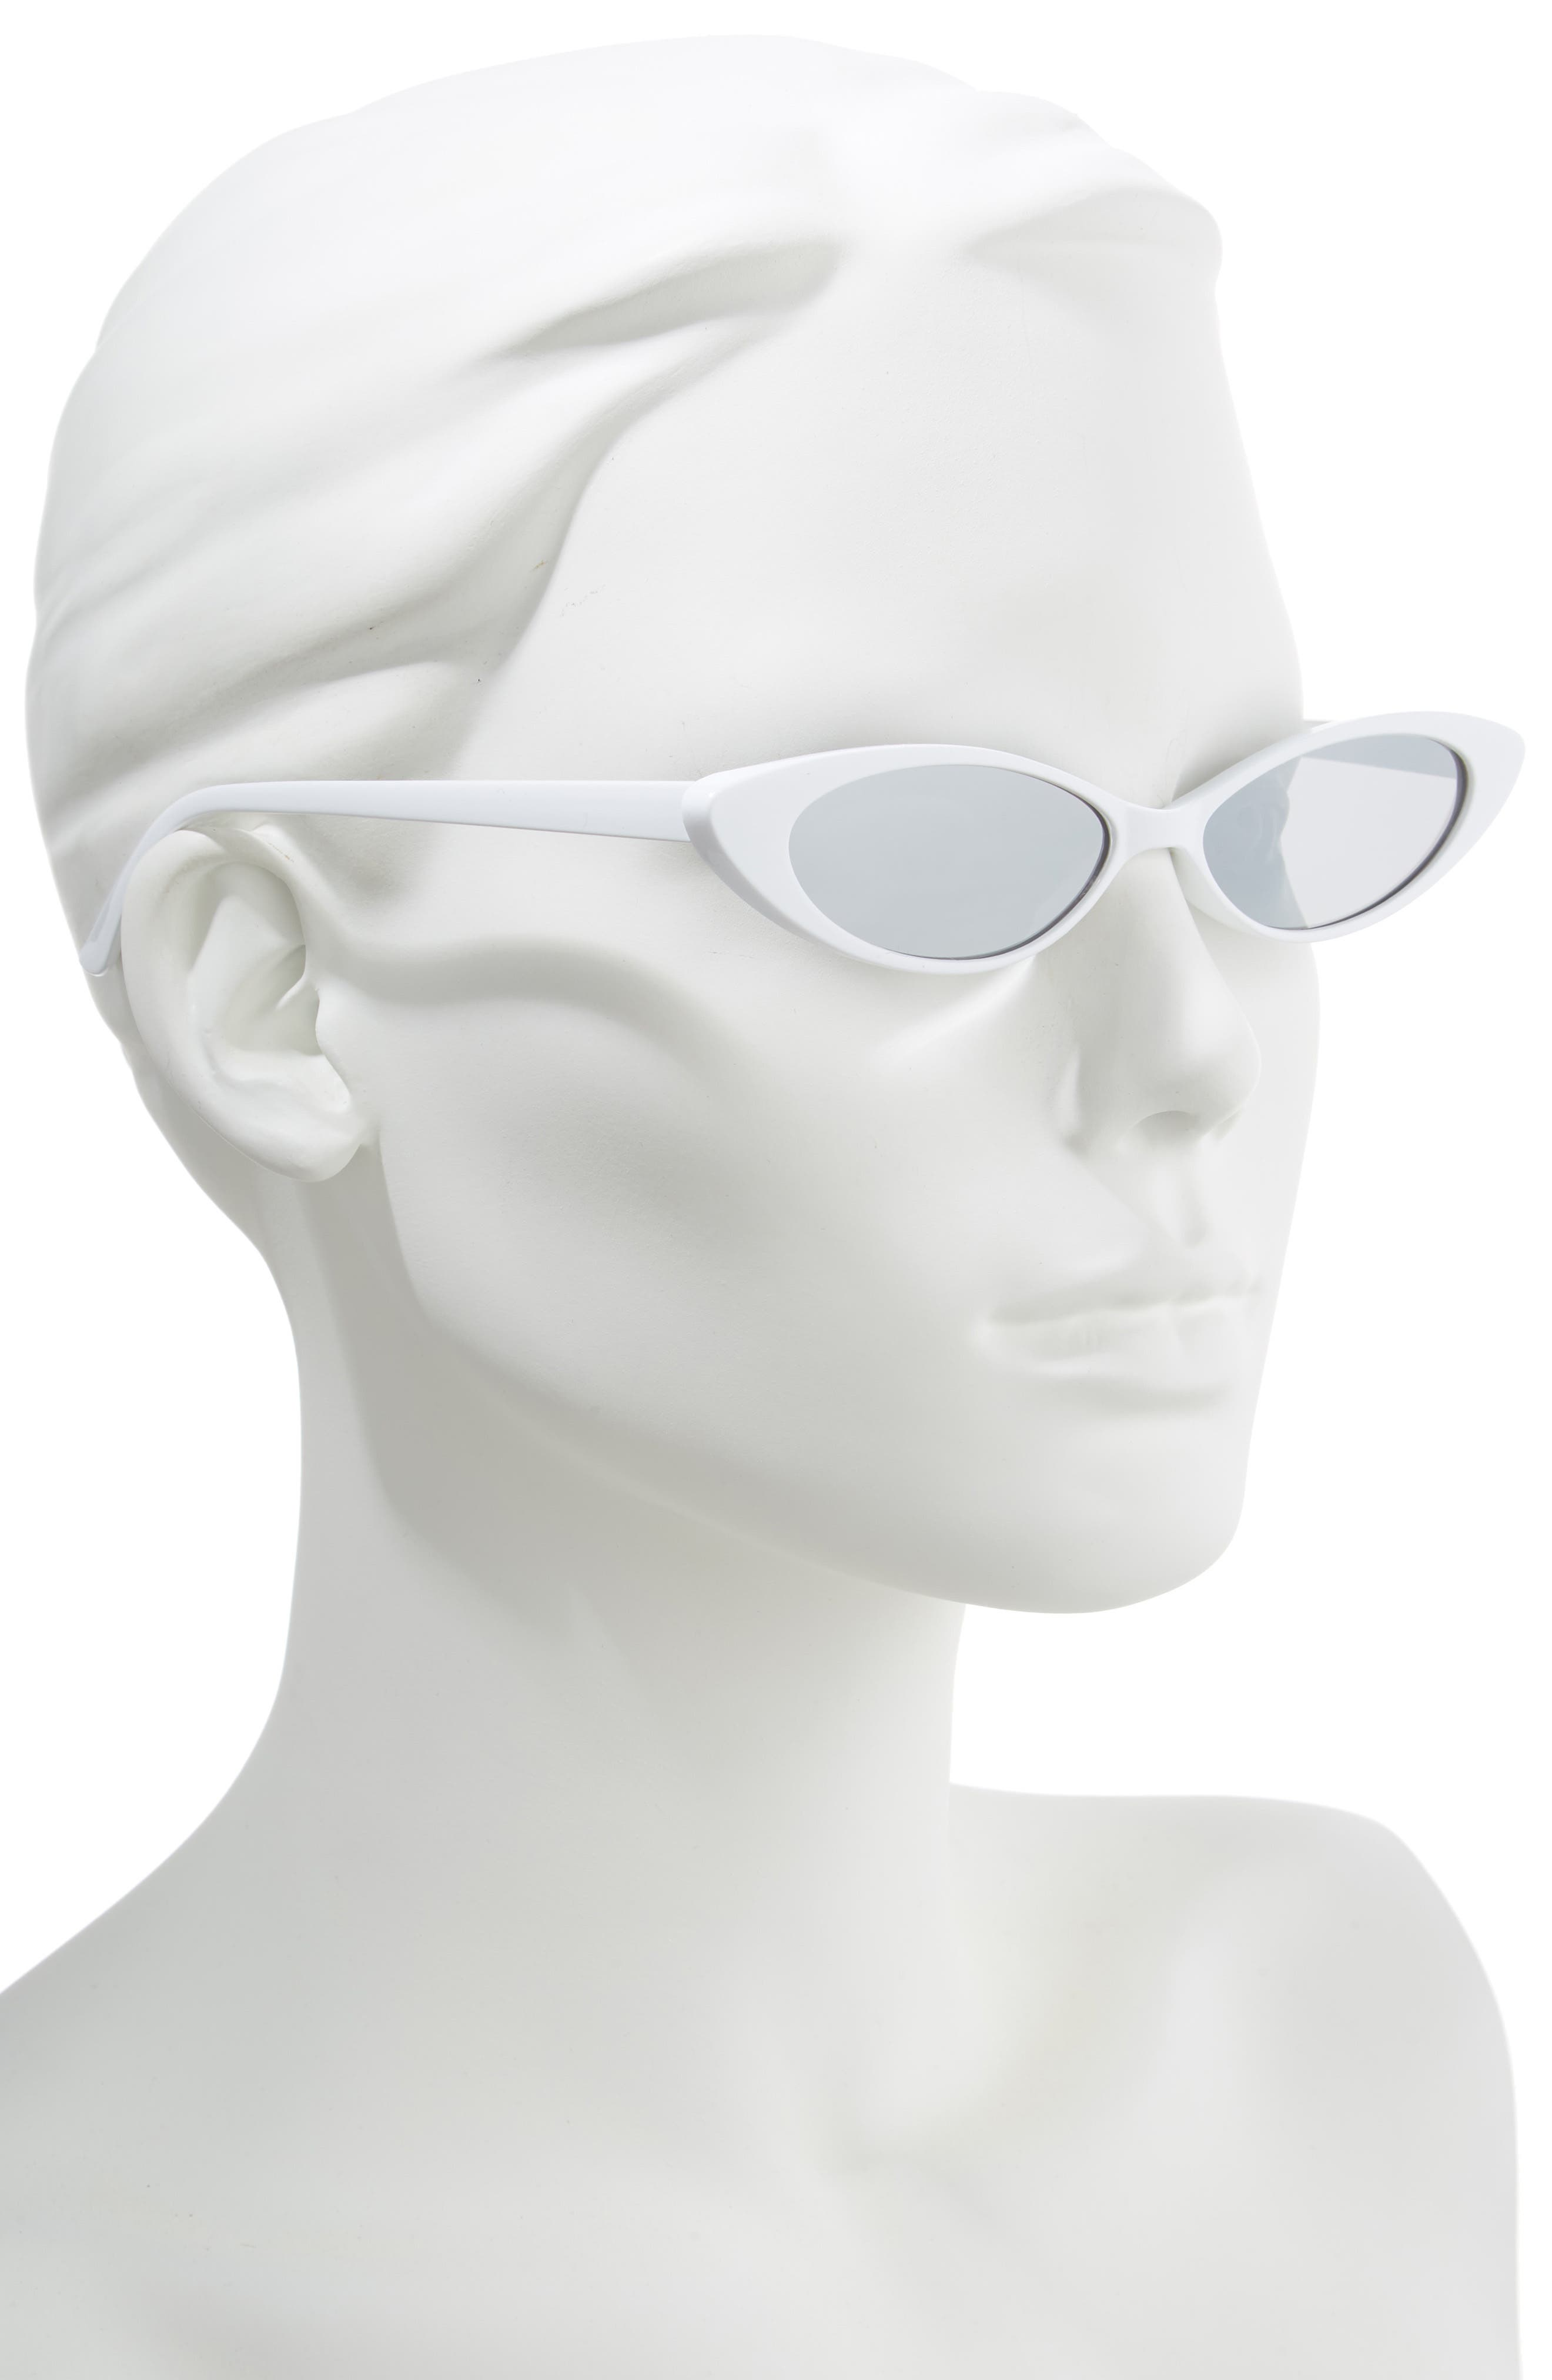 Oval Sunglasses,                             Alternate thumbnail 2, color,                             WHITE/ SILVER